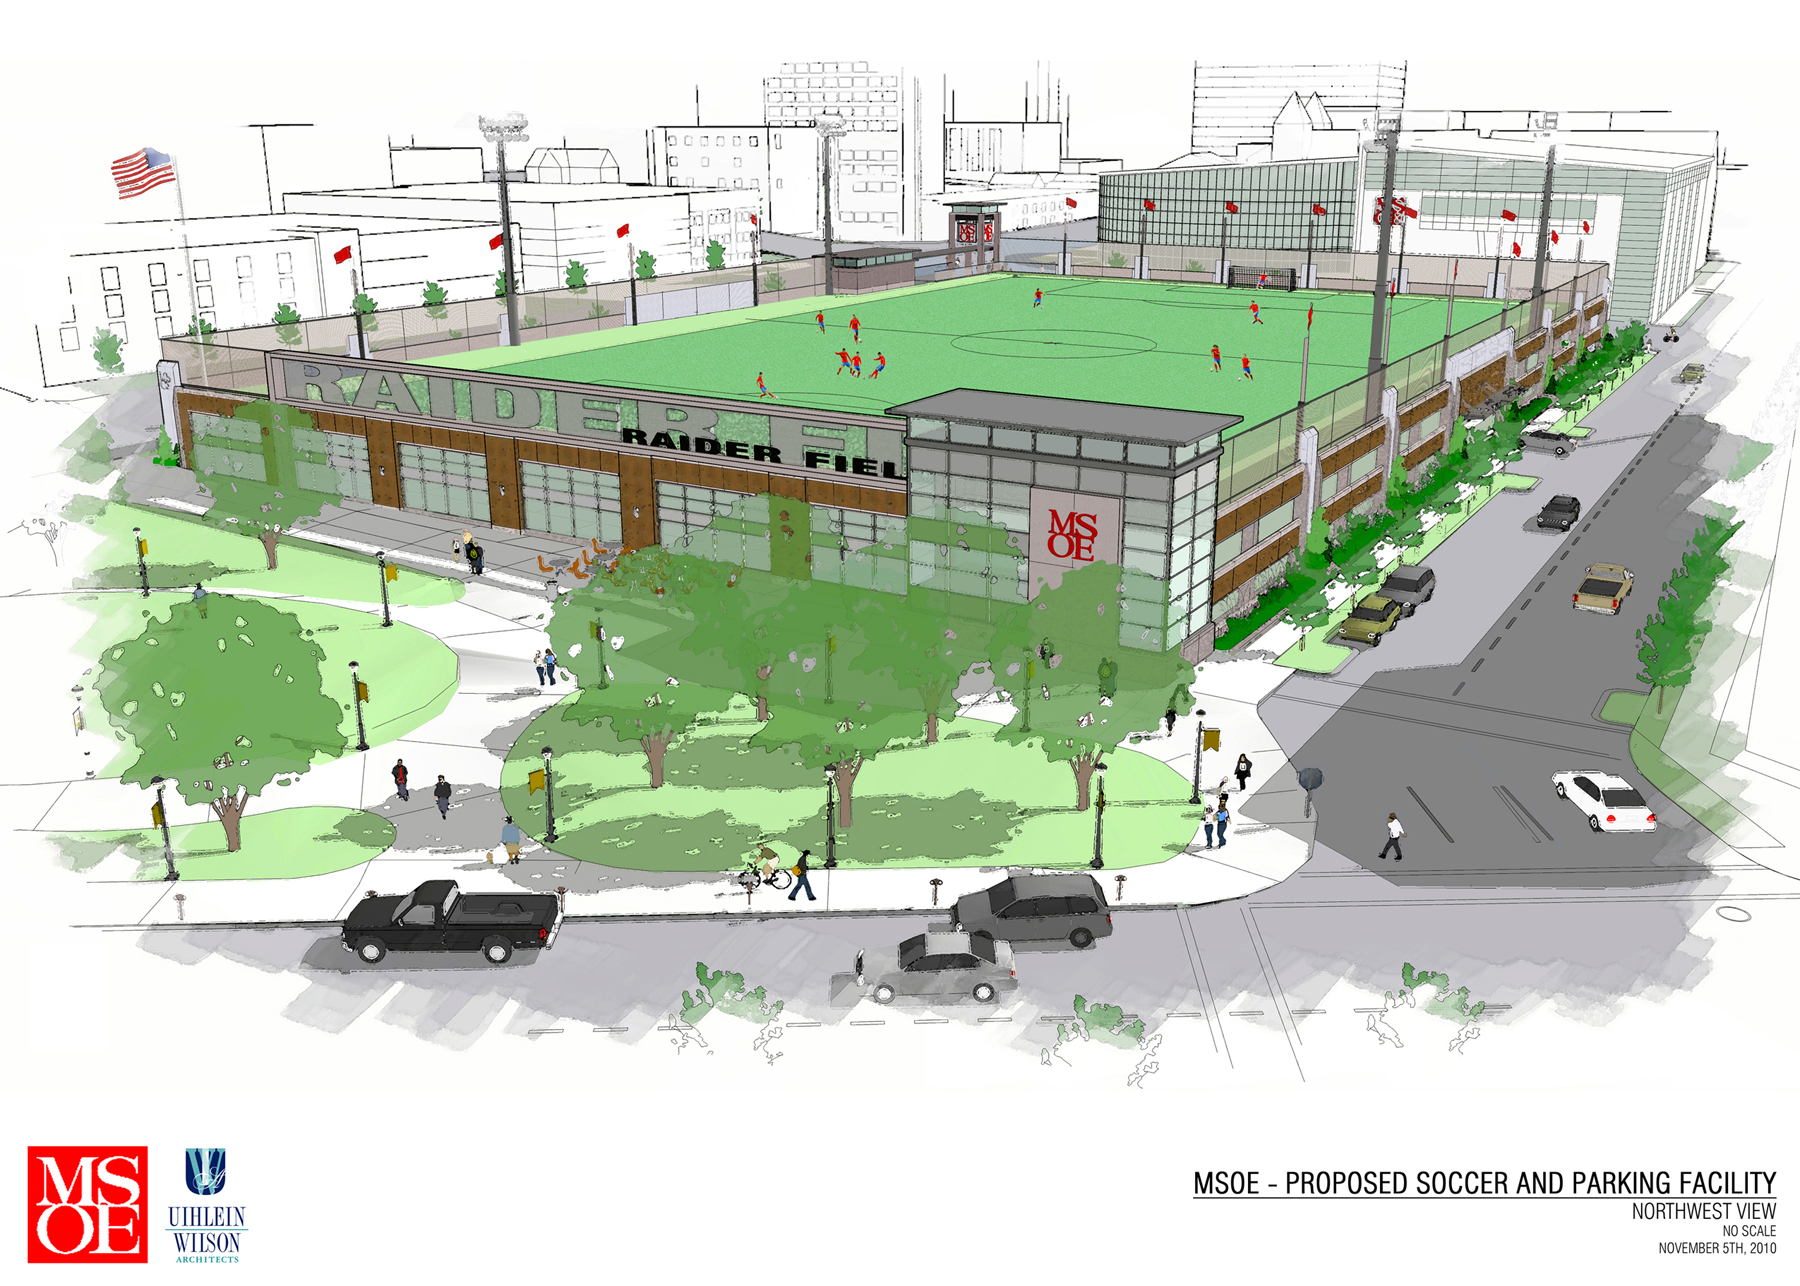 Milwauke School of Engineering soccer and parking facility by Uiblein Wilson Architects.